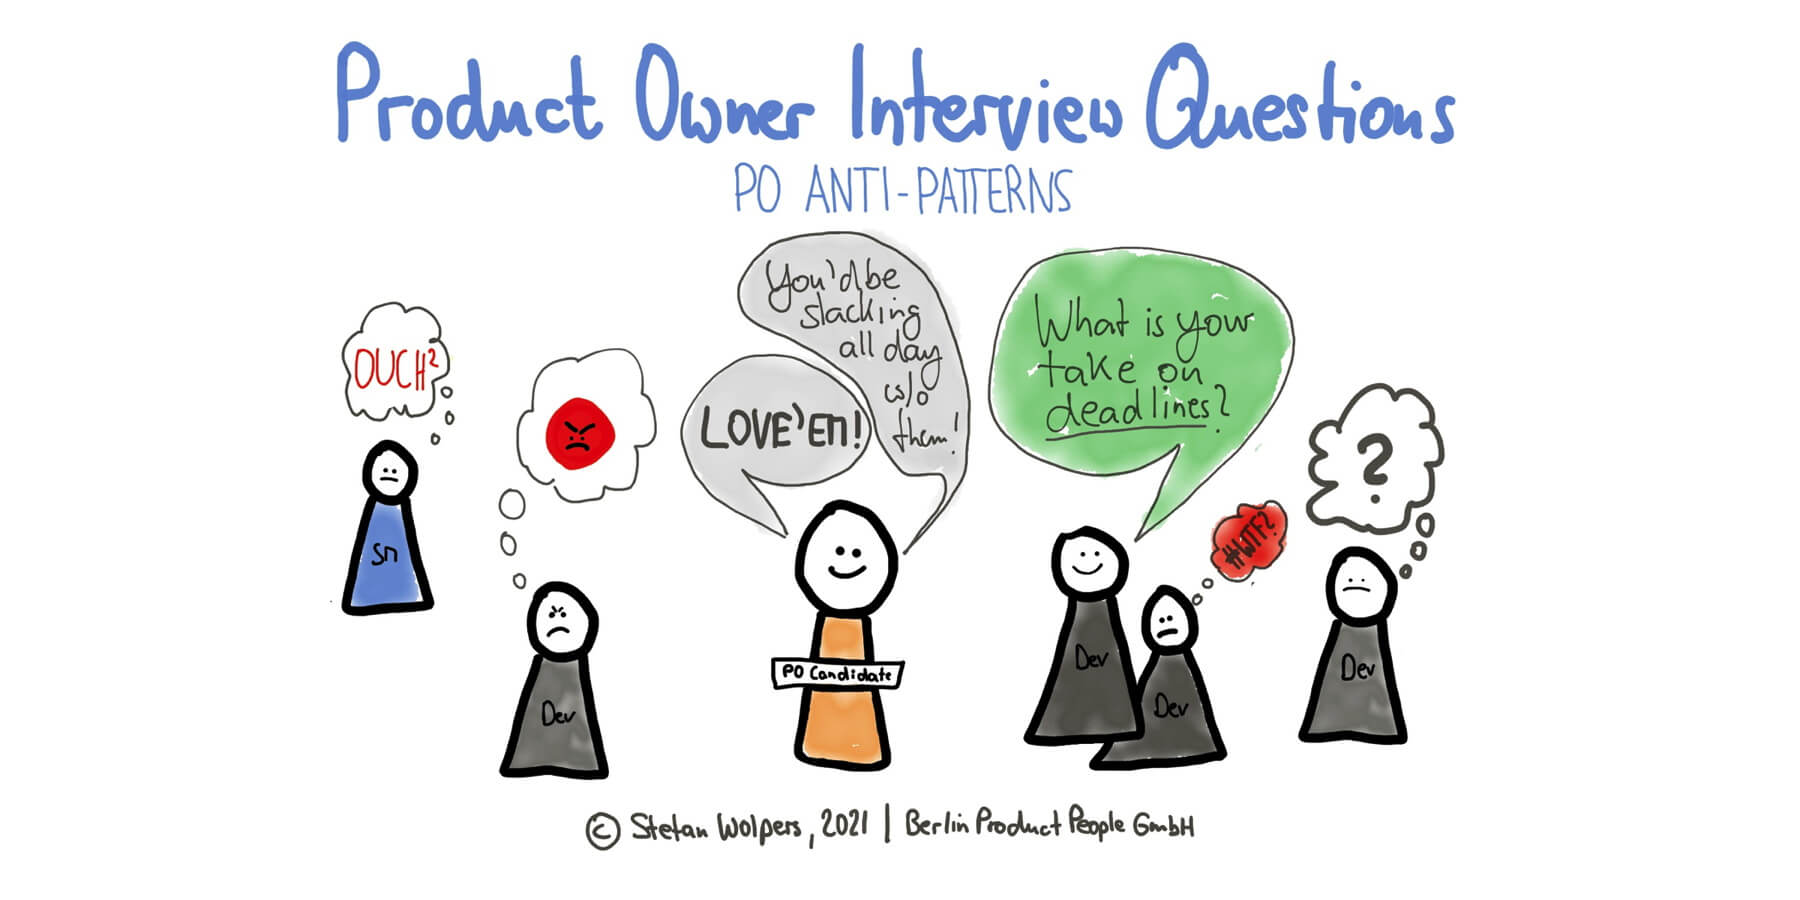 Product Owner Interview Questions: PO Anti-Patterns